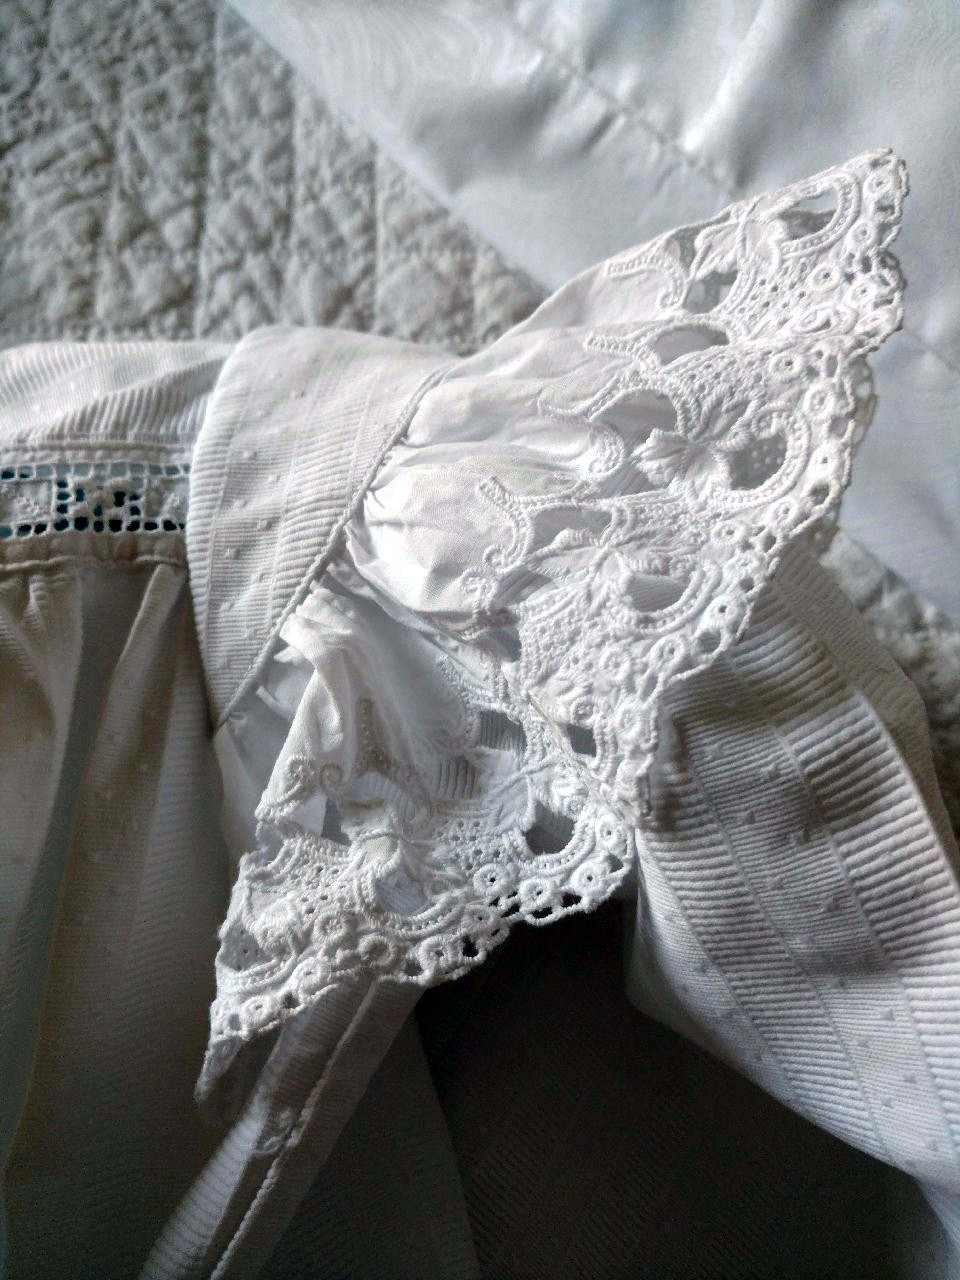 Girl Victorian Dress White Pique Fabric Whitework Embroidery Ruffle Sleeves